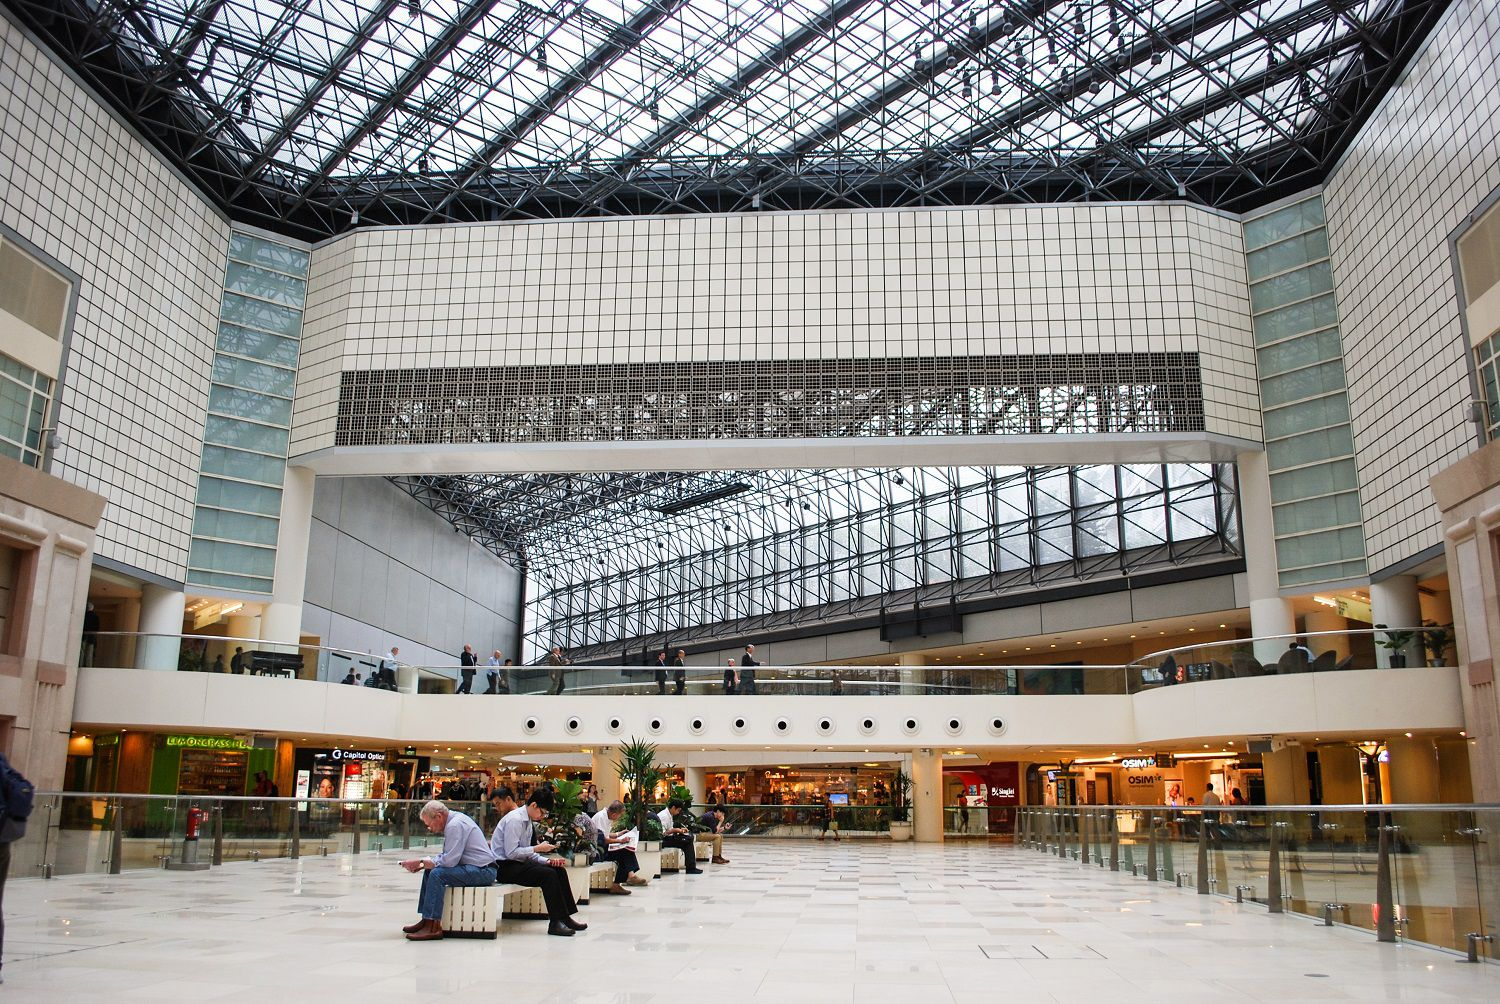 Singapore S Top Shopping Malls In City Hall And Marina Bay